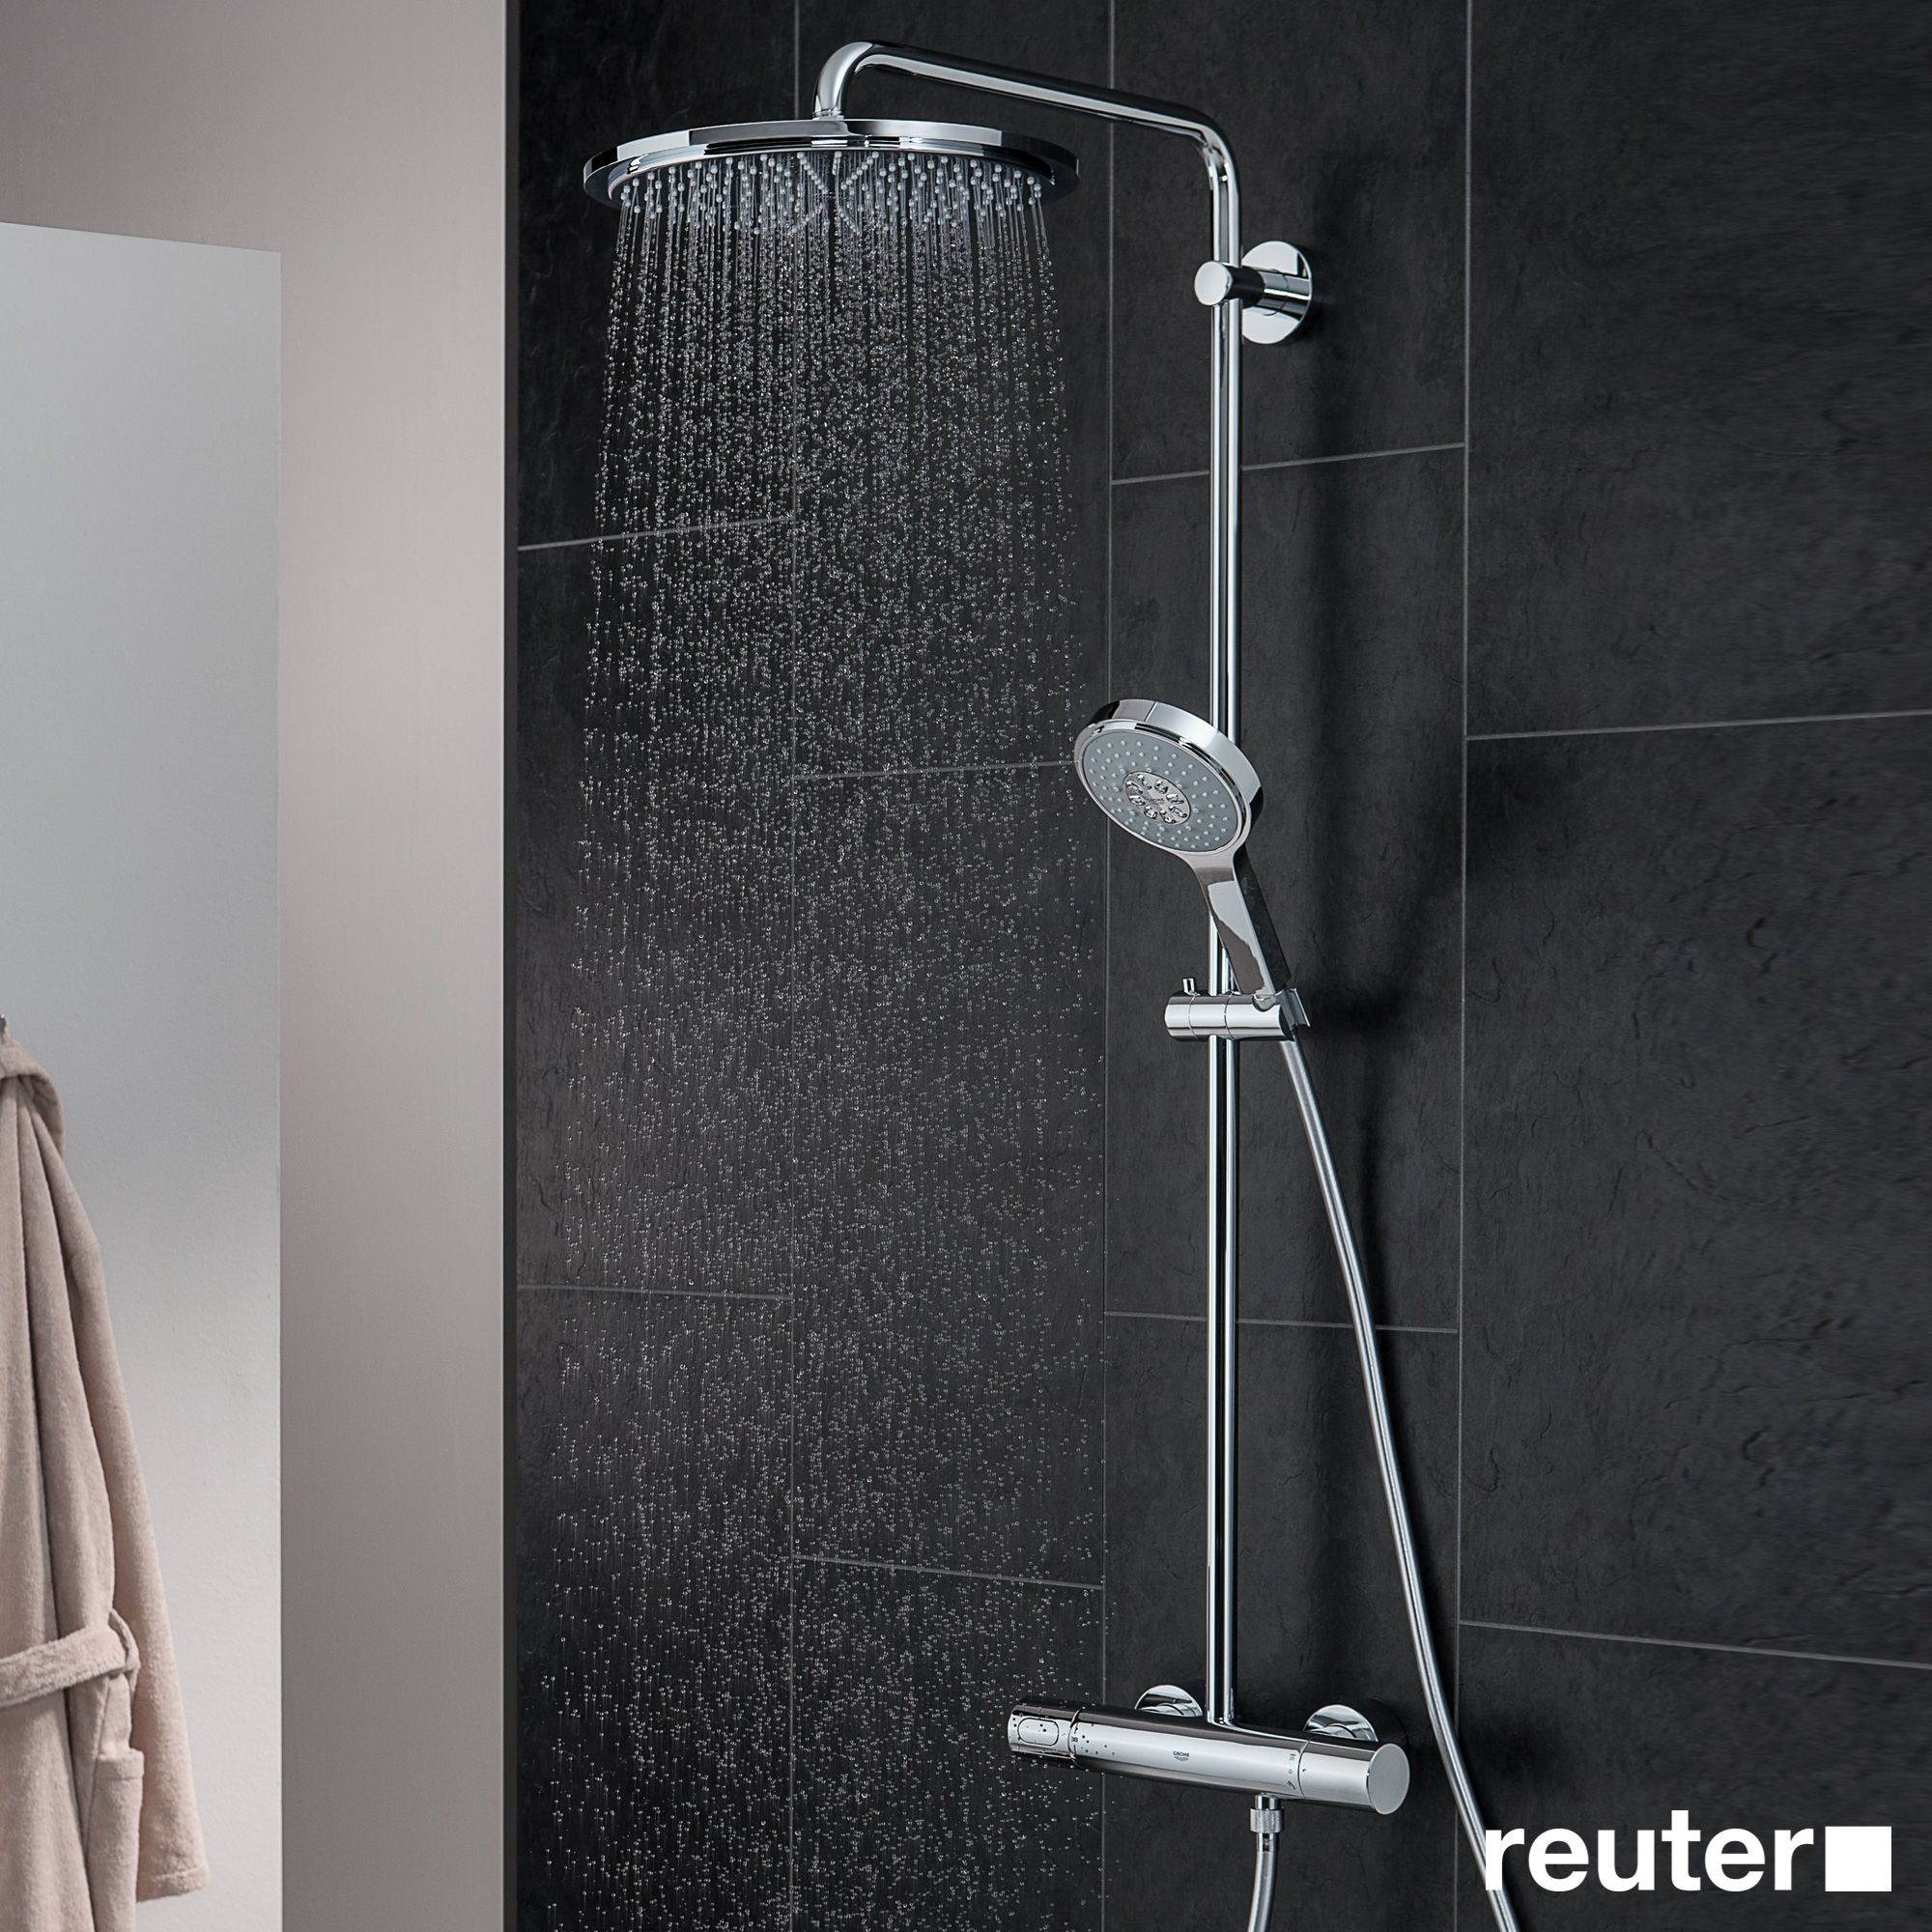 grohe rainshower system 310 duschsystem mit thermostatbatterie f r wandmontage badezimmer. Black Bedroom Furniture Sets. Home Design Ideas